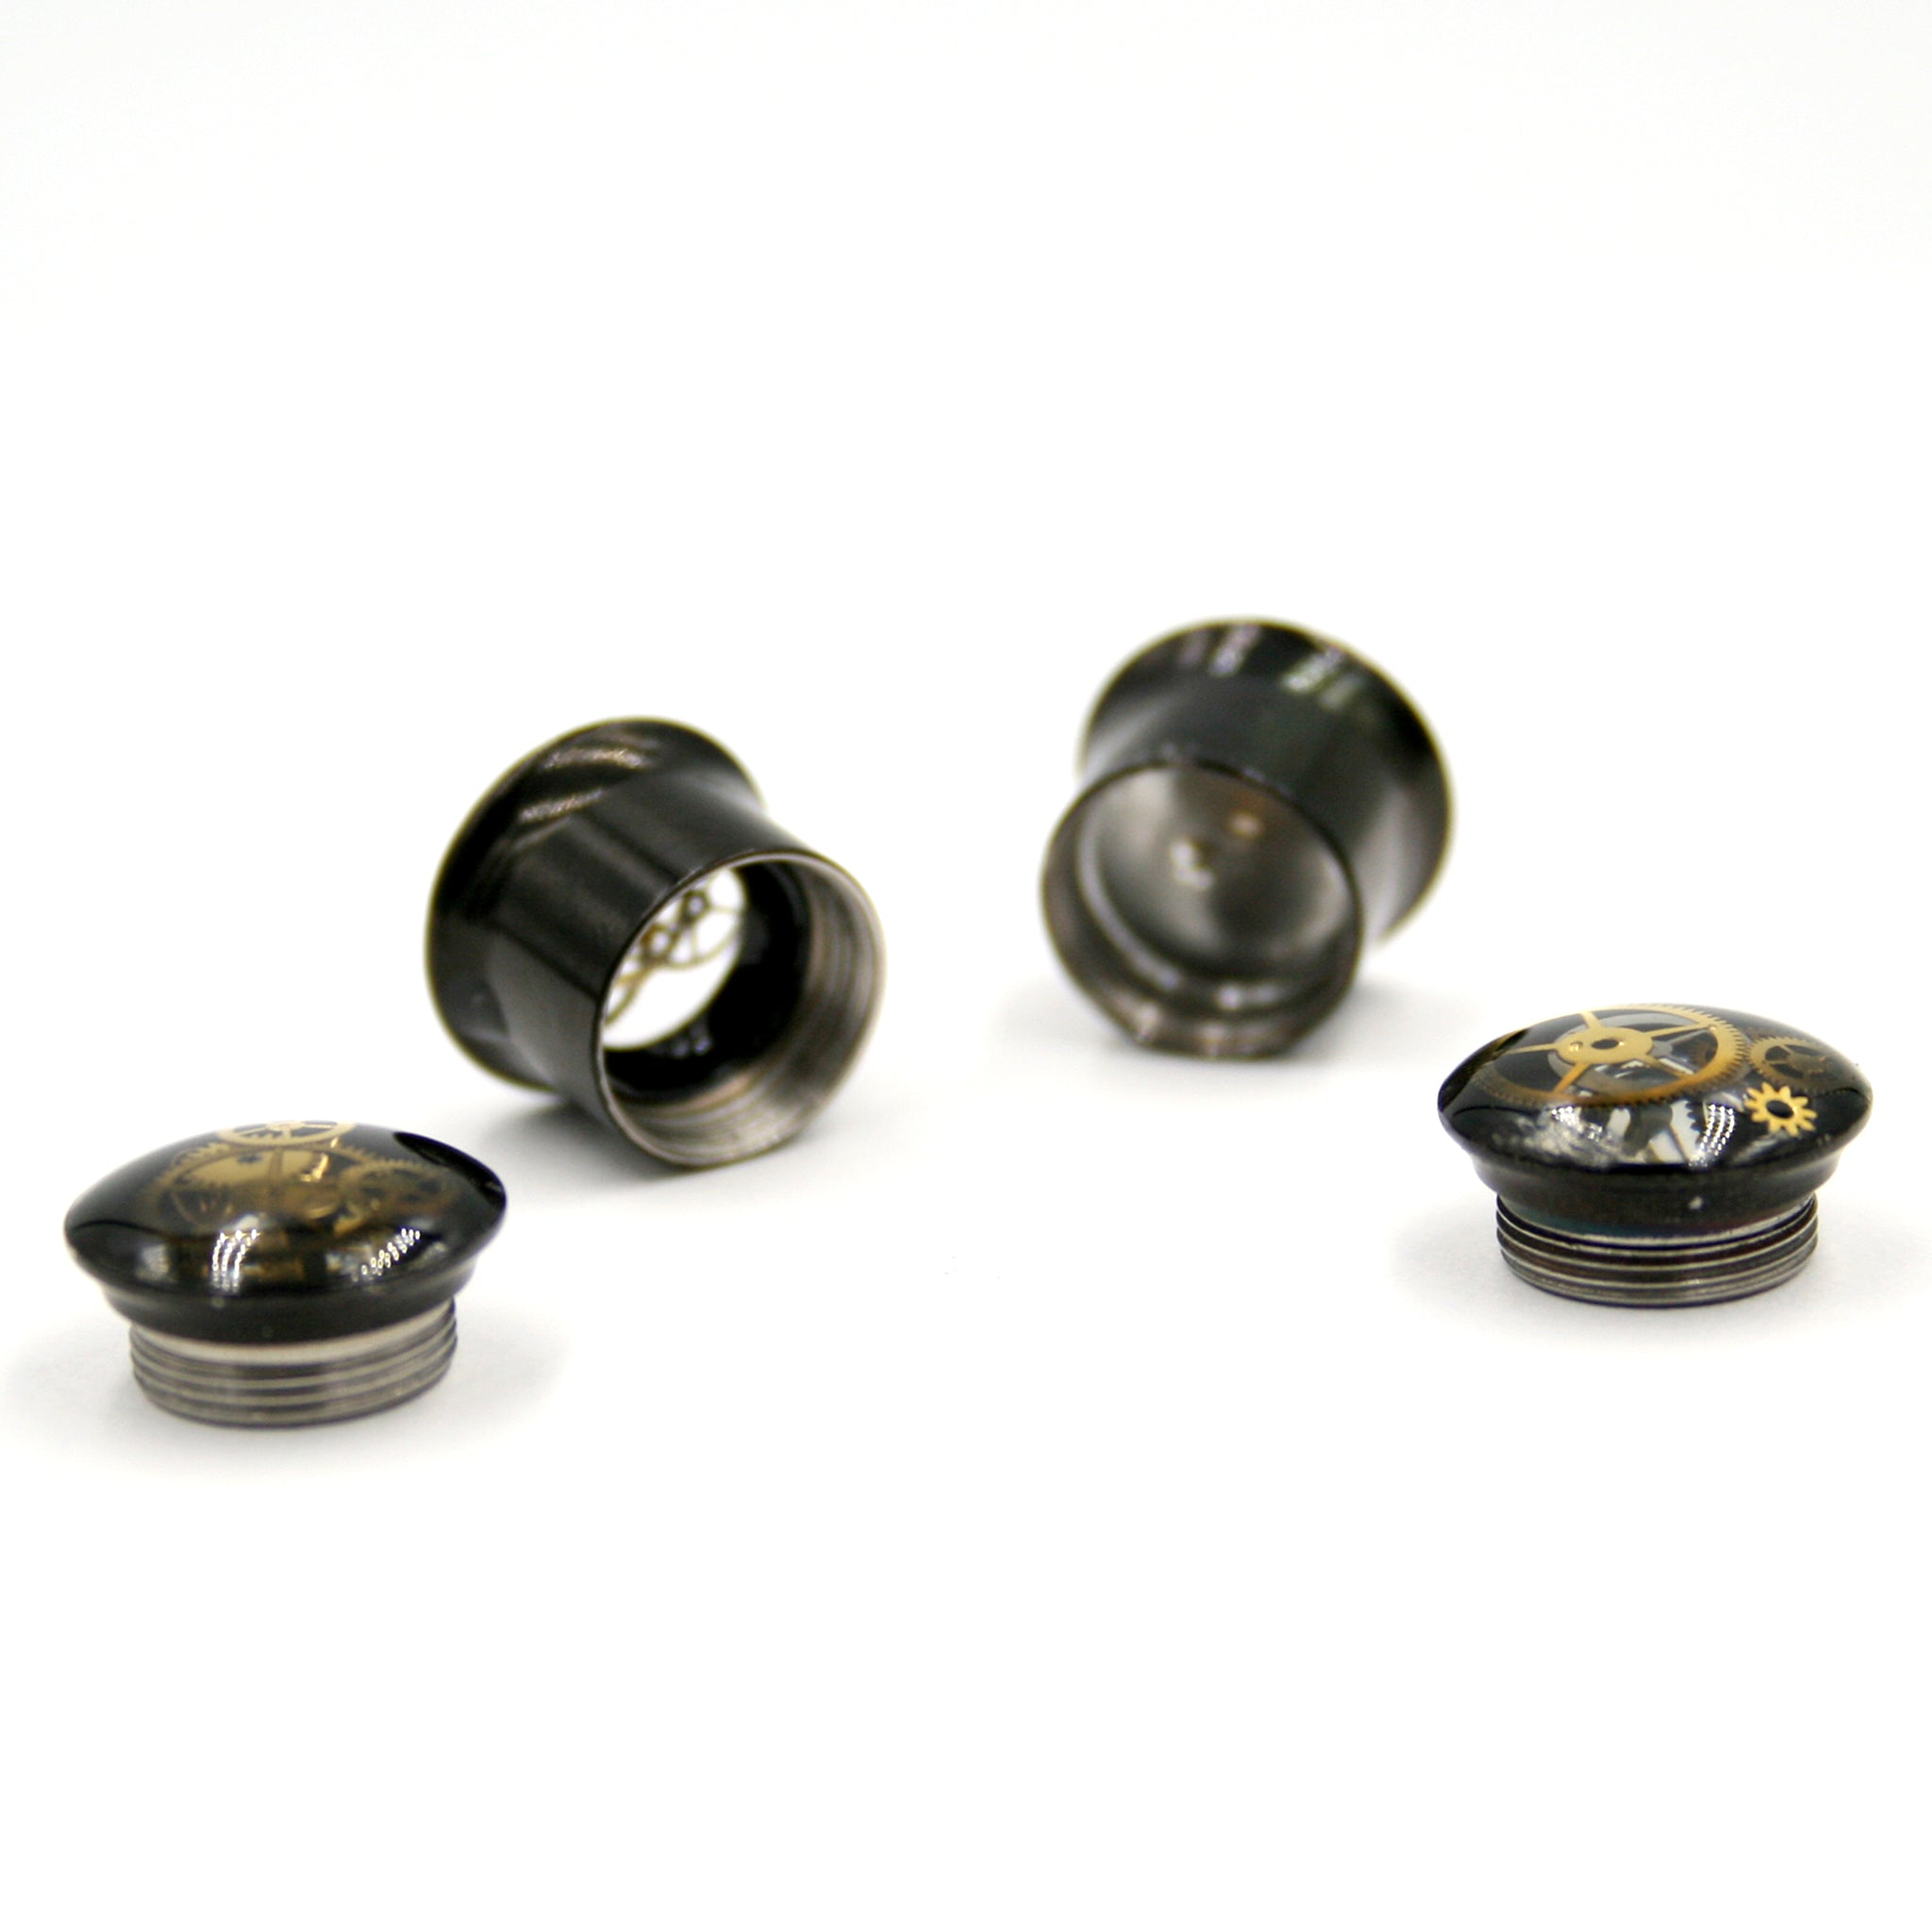 14mm screw back black ear gauges in steampunk style